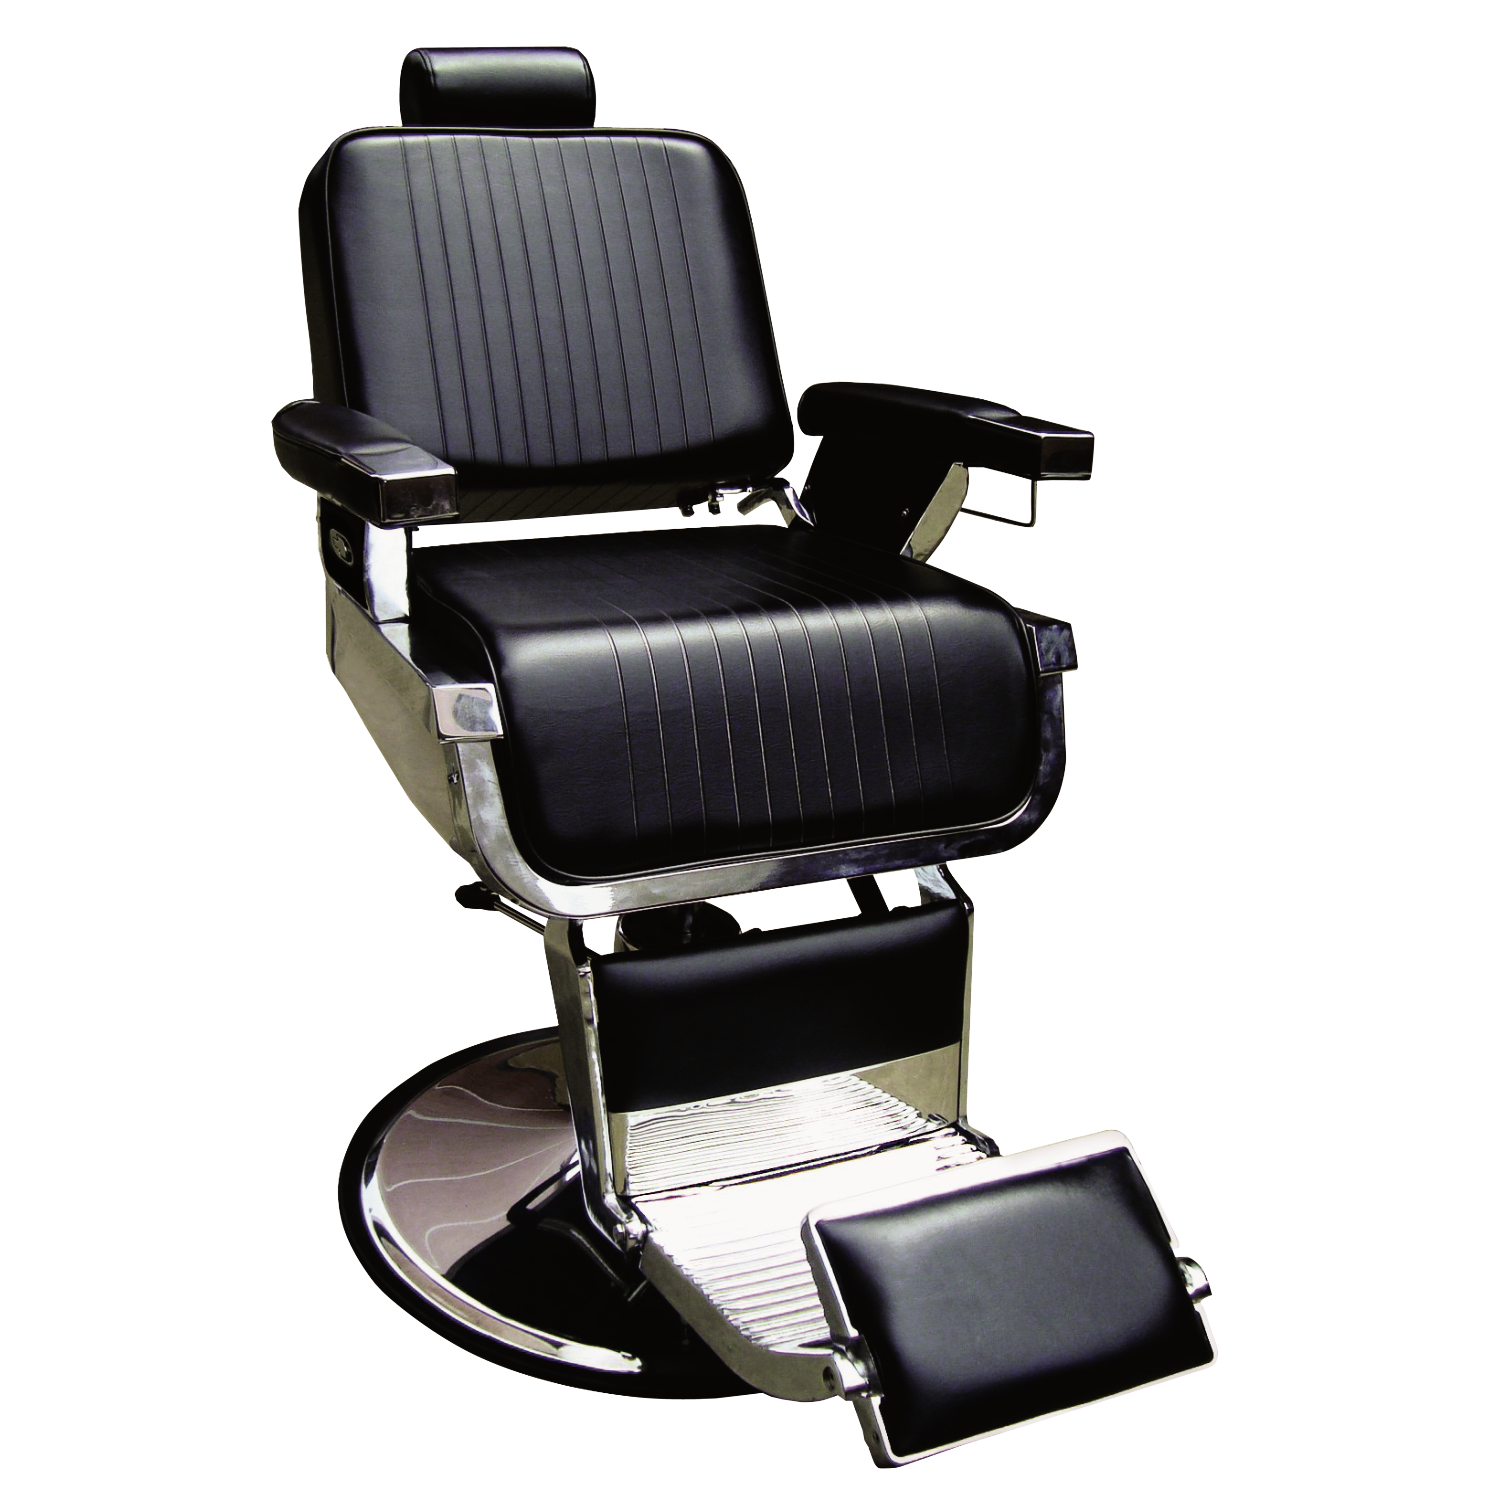 Puresana Alexander Barber Chair In 2021 Barber Chair Barber Shop Chairs Barber